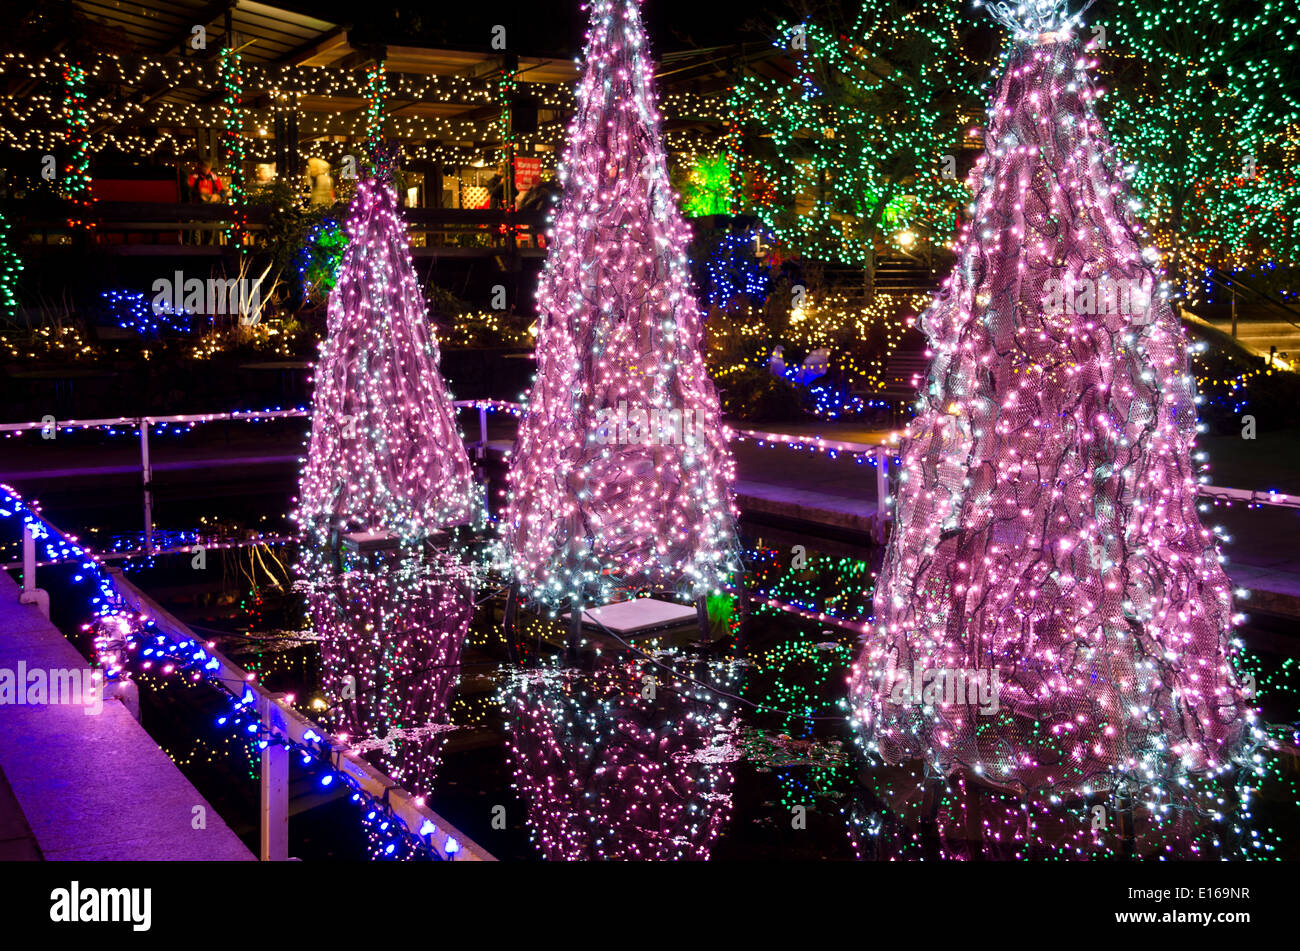 High Quality Beautiful Christmas Tree Lights And Other Holiday Illuminations At VanDusen  Botanical Garden In Vancouver, BC, Canada